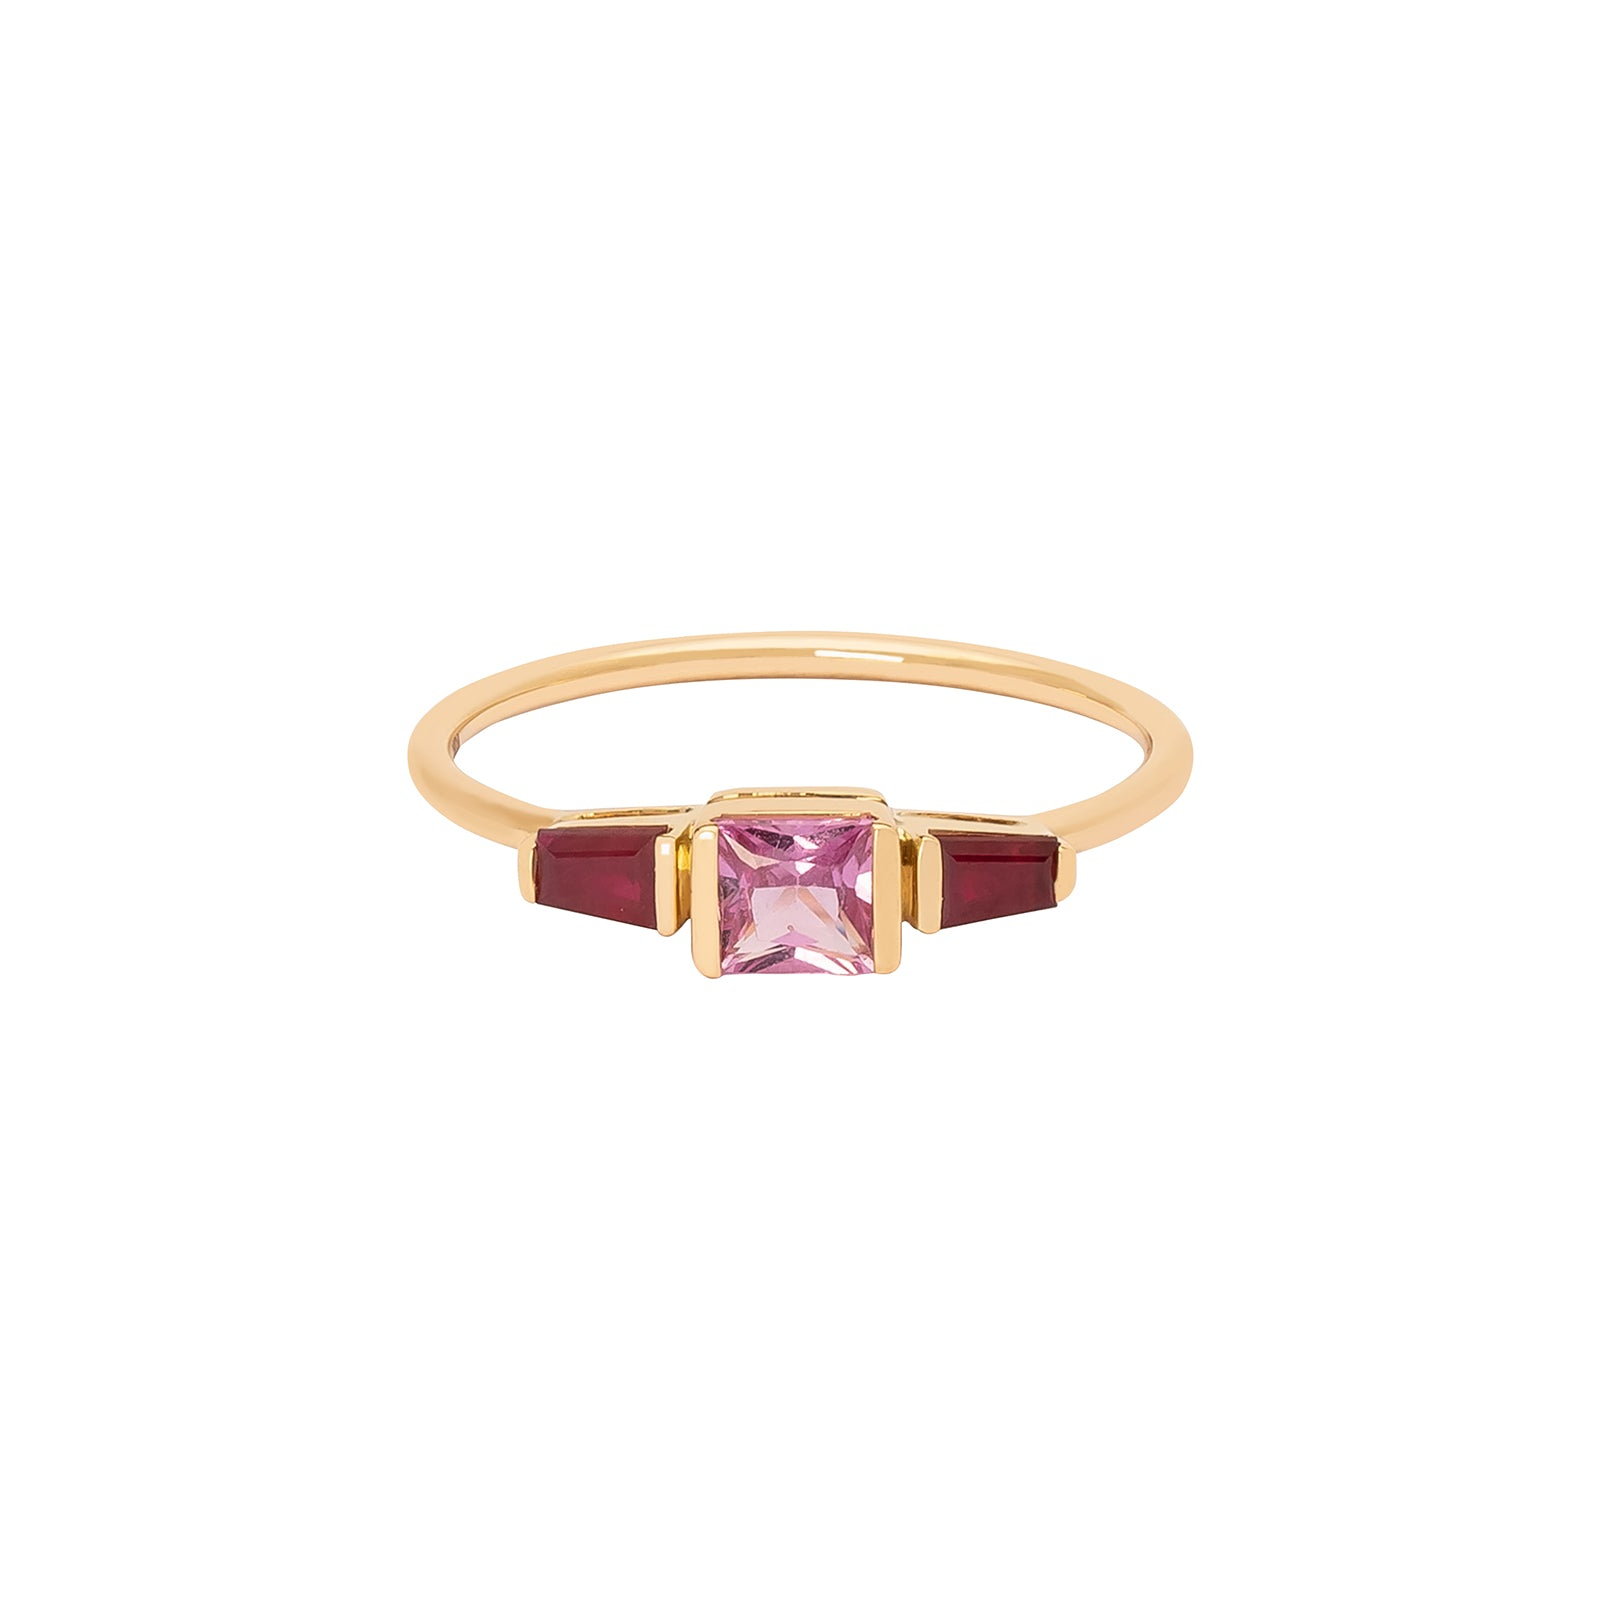 YI Collection Lacroix Ring - Pink Sapphire & Ruby - Rings - Broken English Jewelry